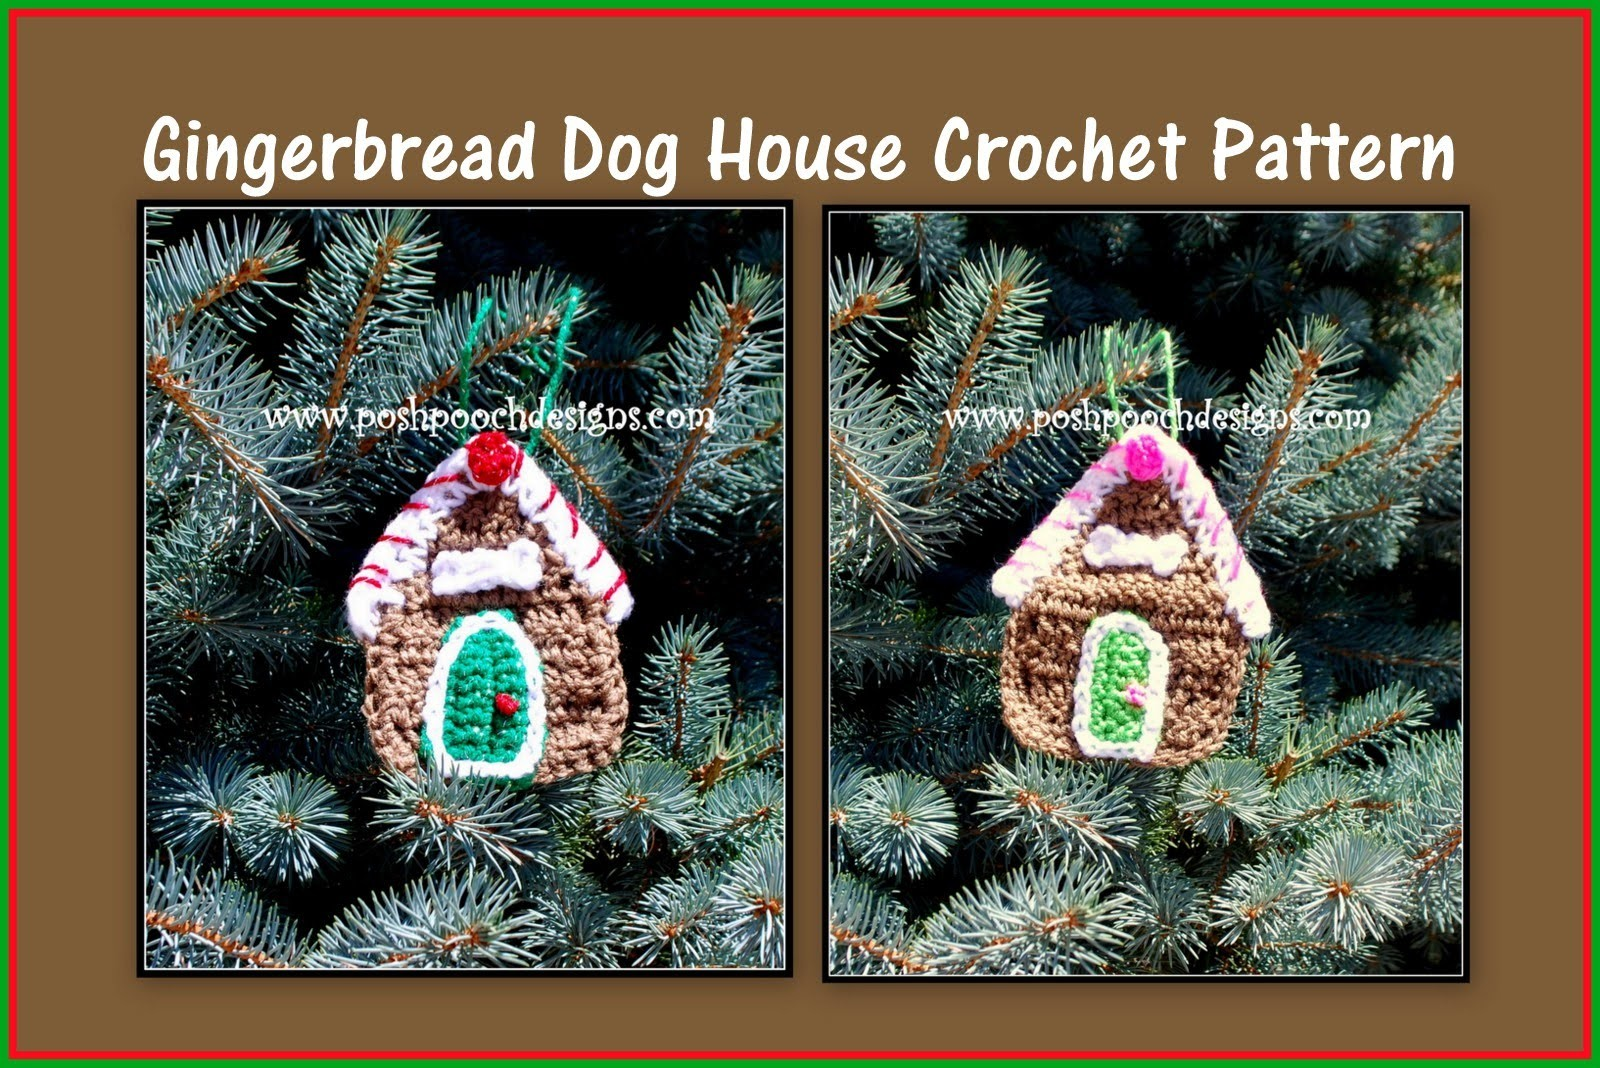 Gingerbread Dog House Crochet Pattern